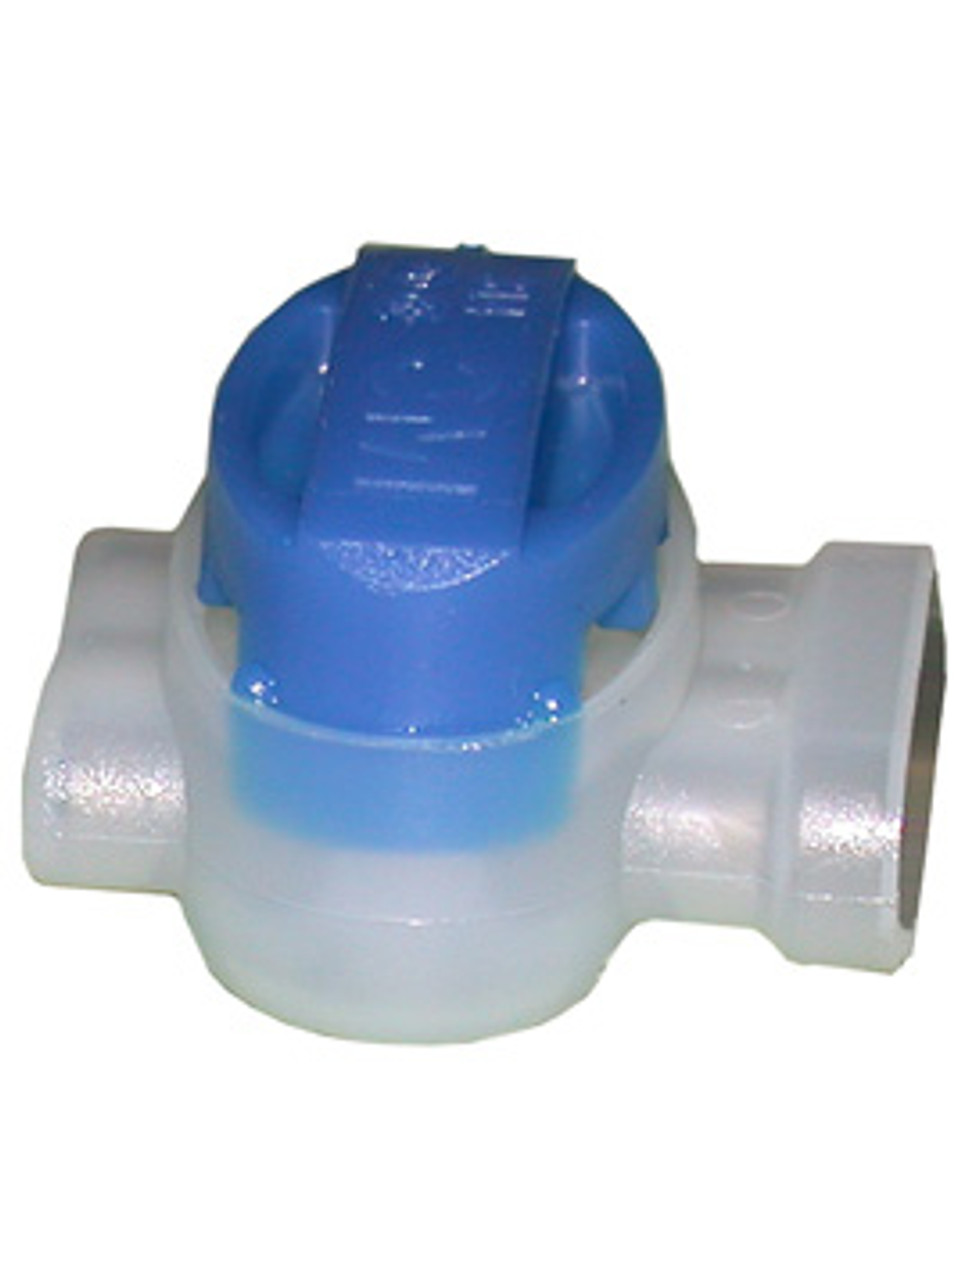 635 --- Blue Pigtail Connector with Sealant